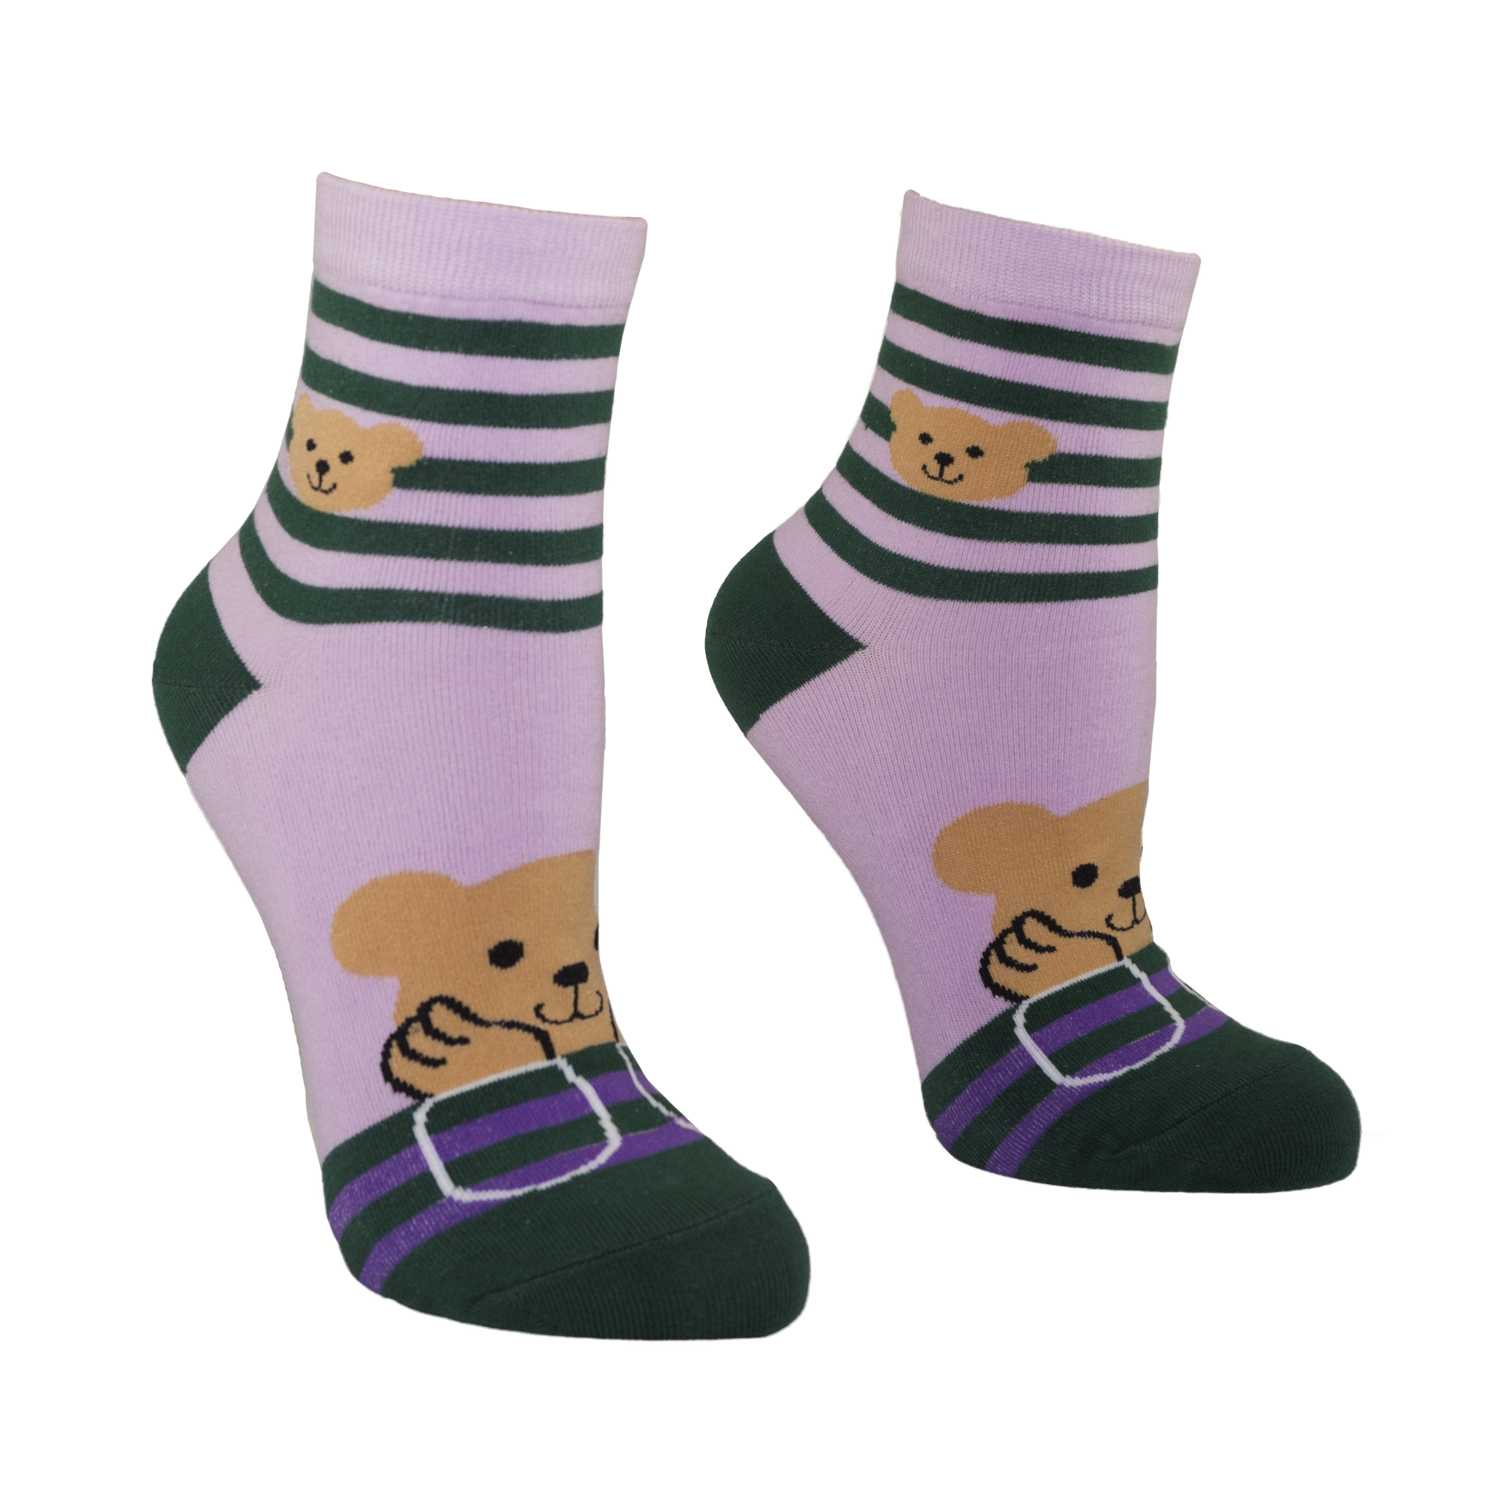 Women's Pretty Bear Design Crew Socks - Pink - Zestique